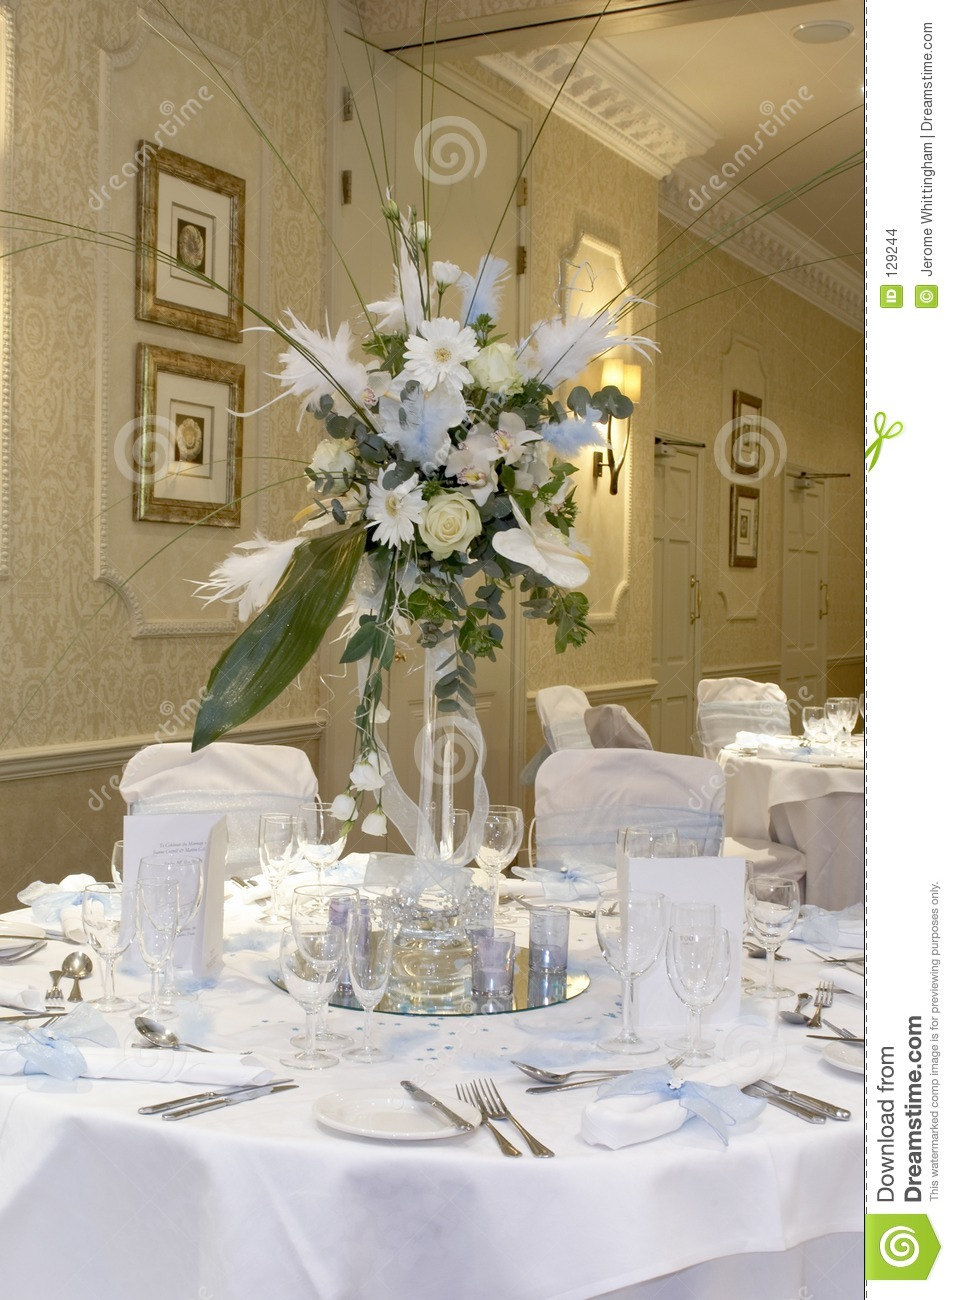 Table Decorations Stock Images - Image: 129244